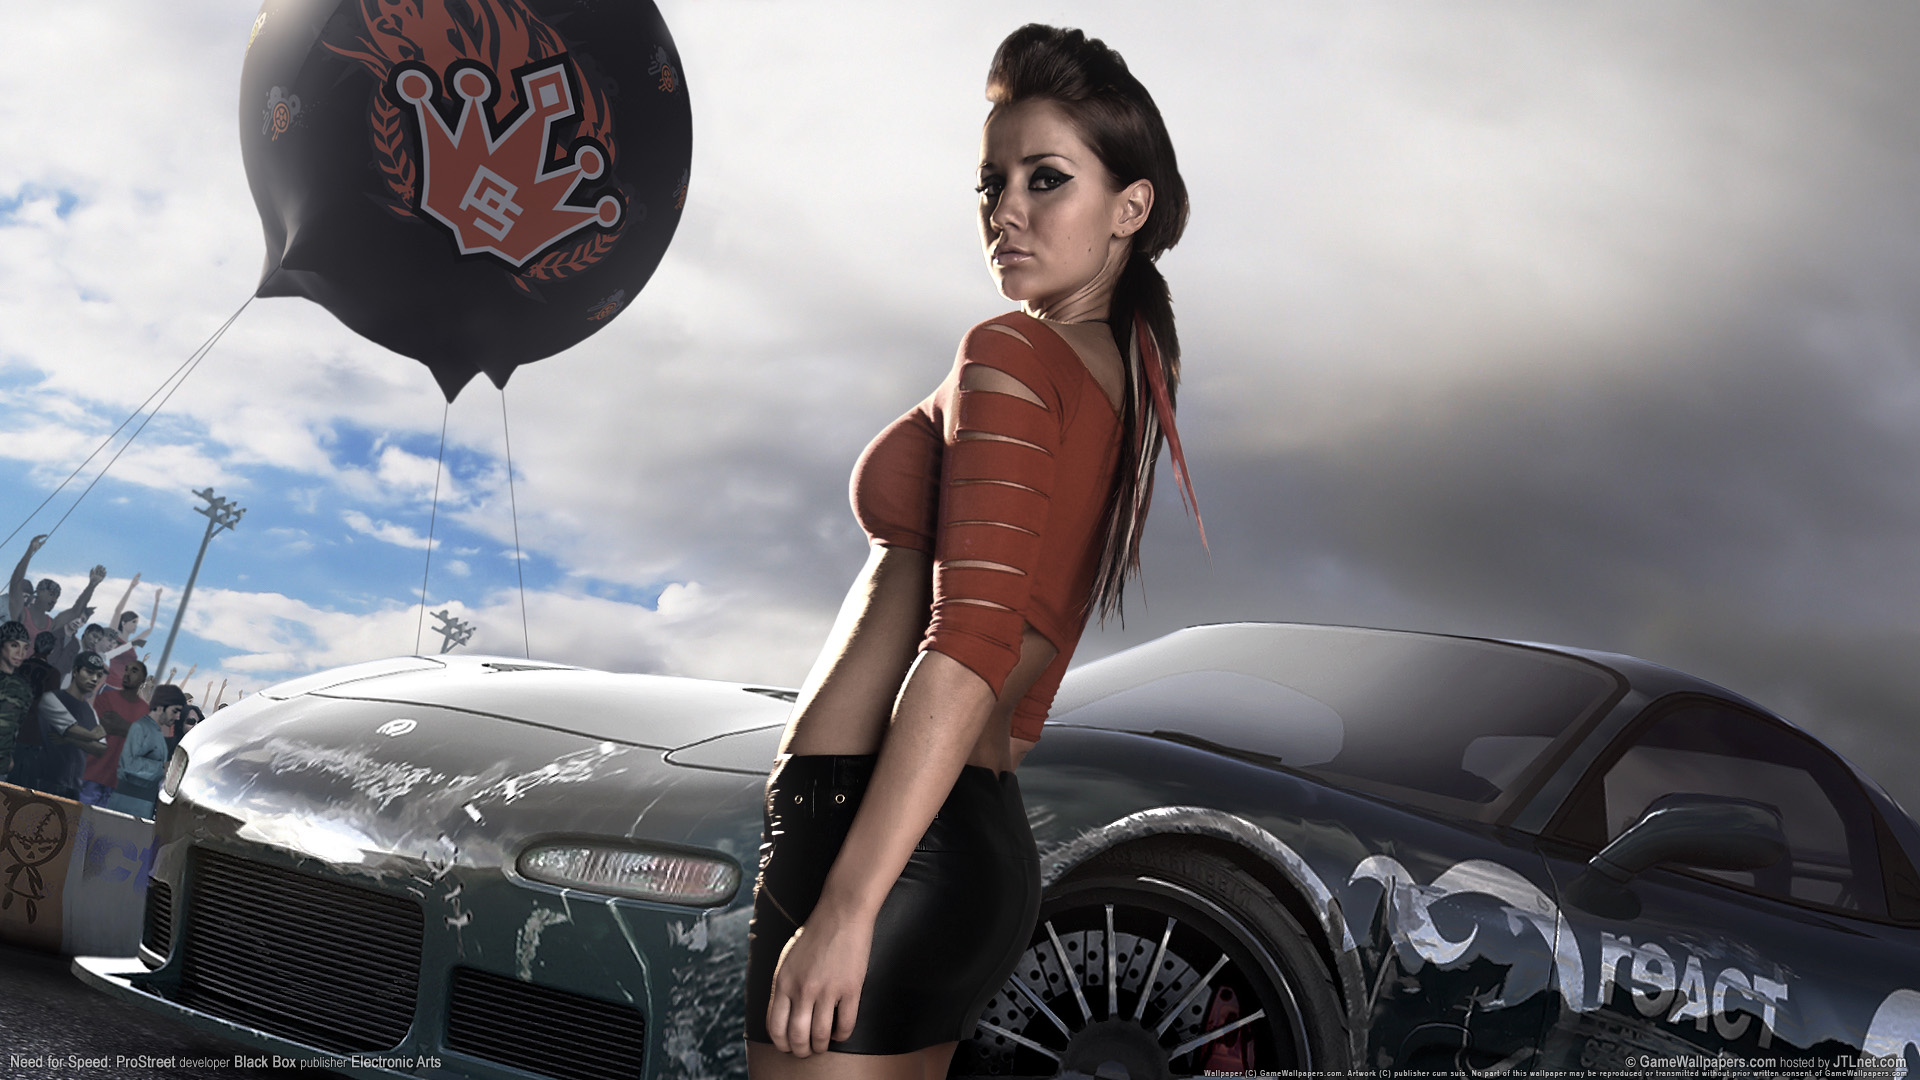 Need for speed prostreet Girls 3 825.11 Kb